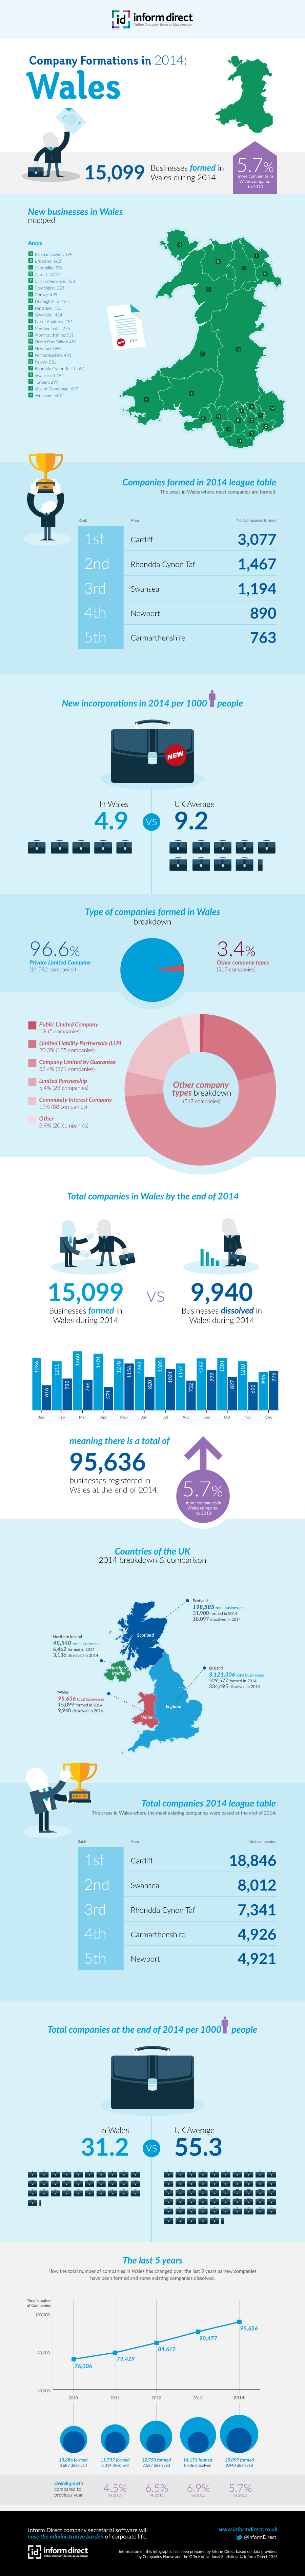 Inform Direct - Company Formations in Wales 2014 Infographic